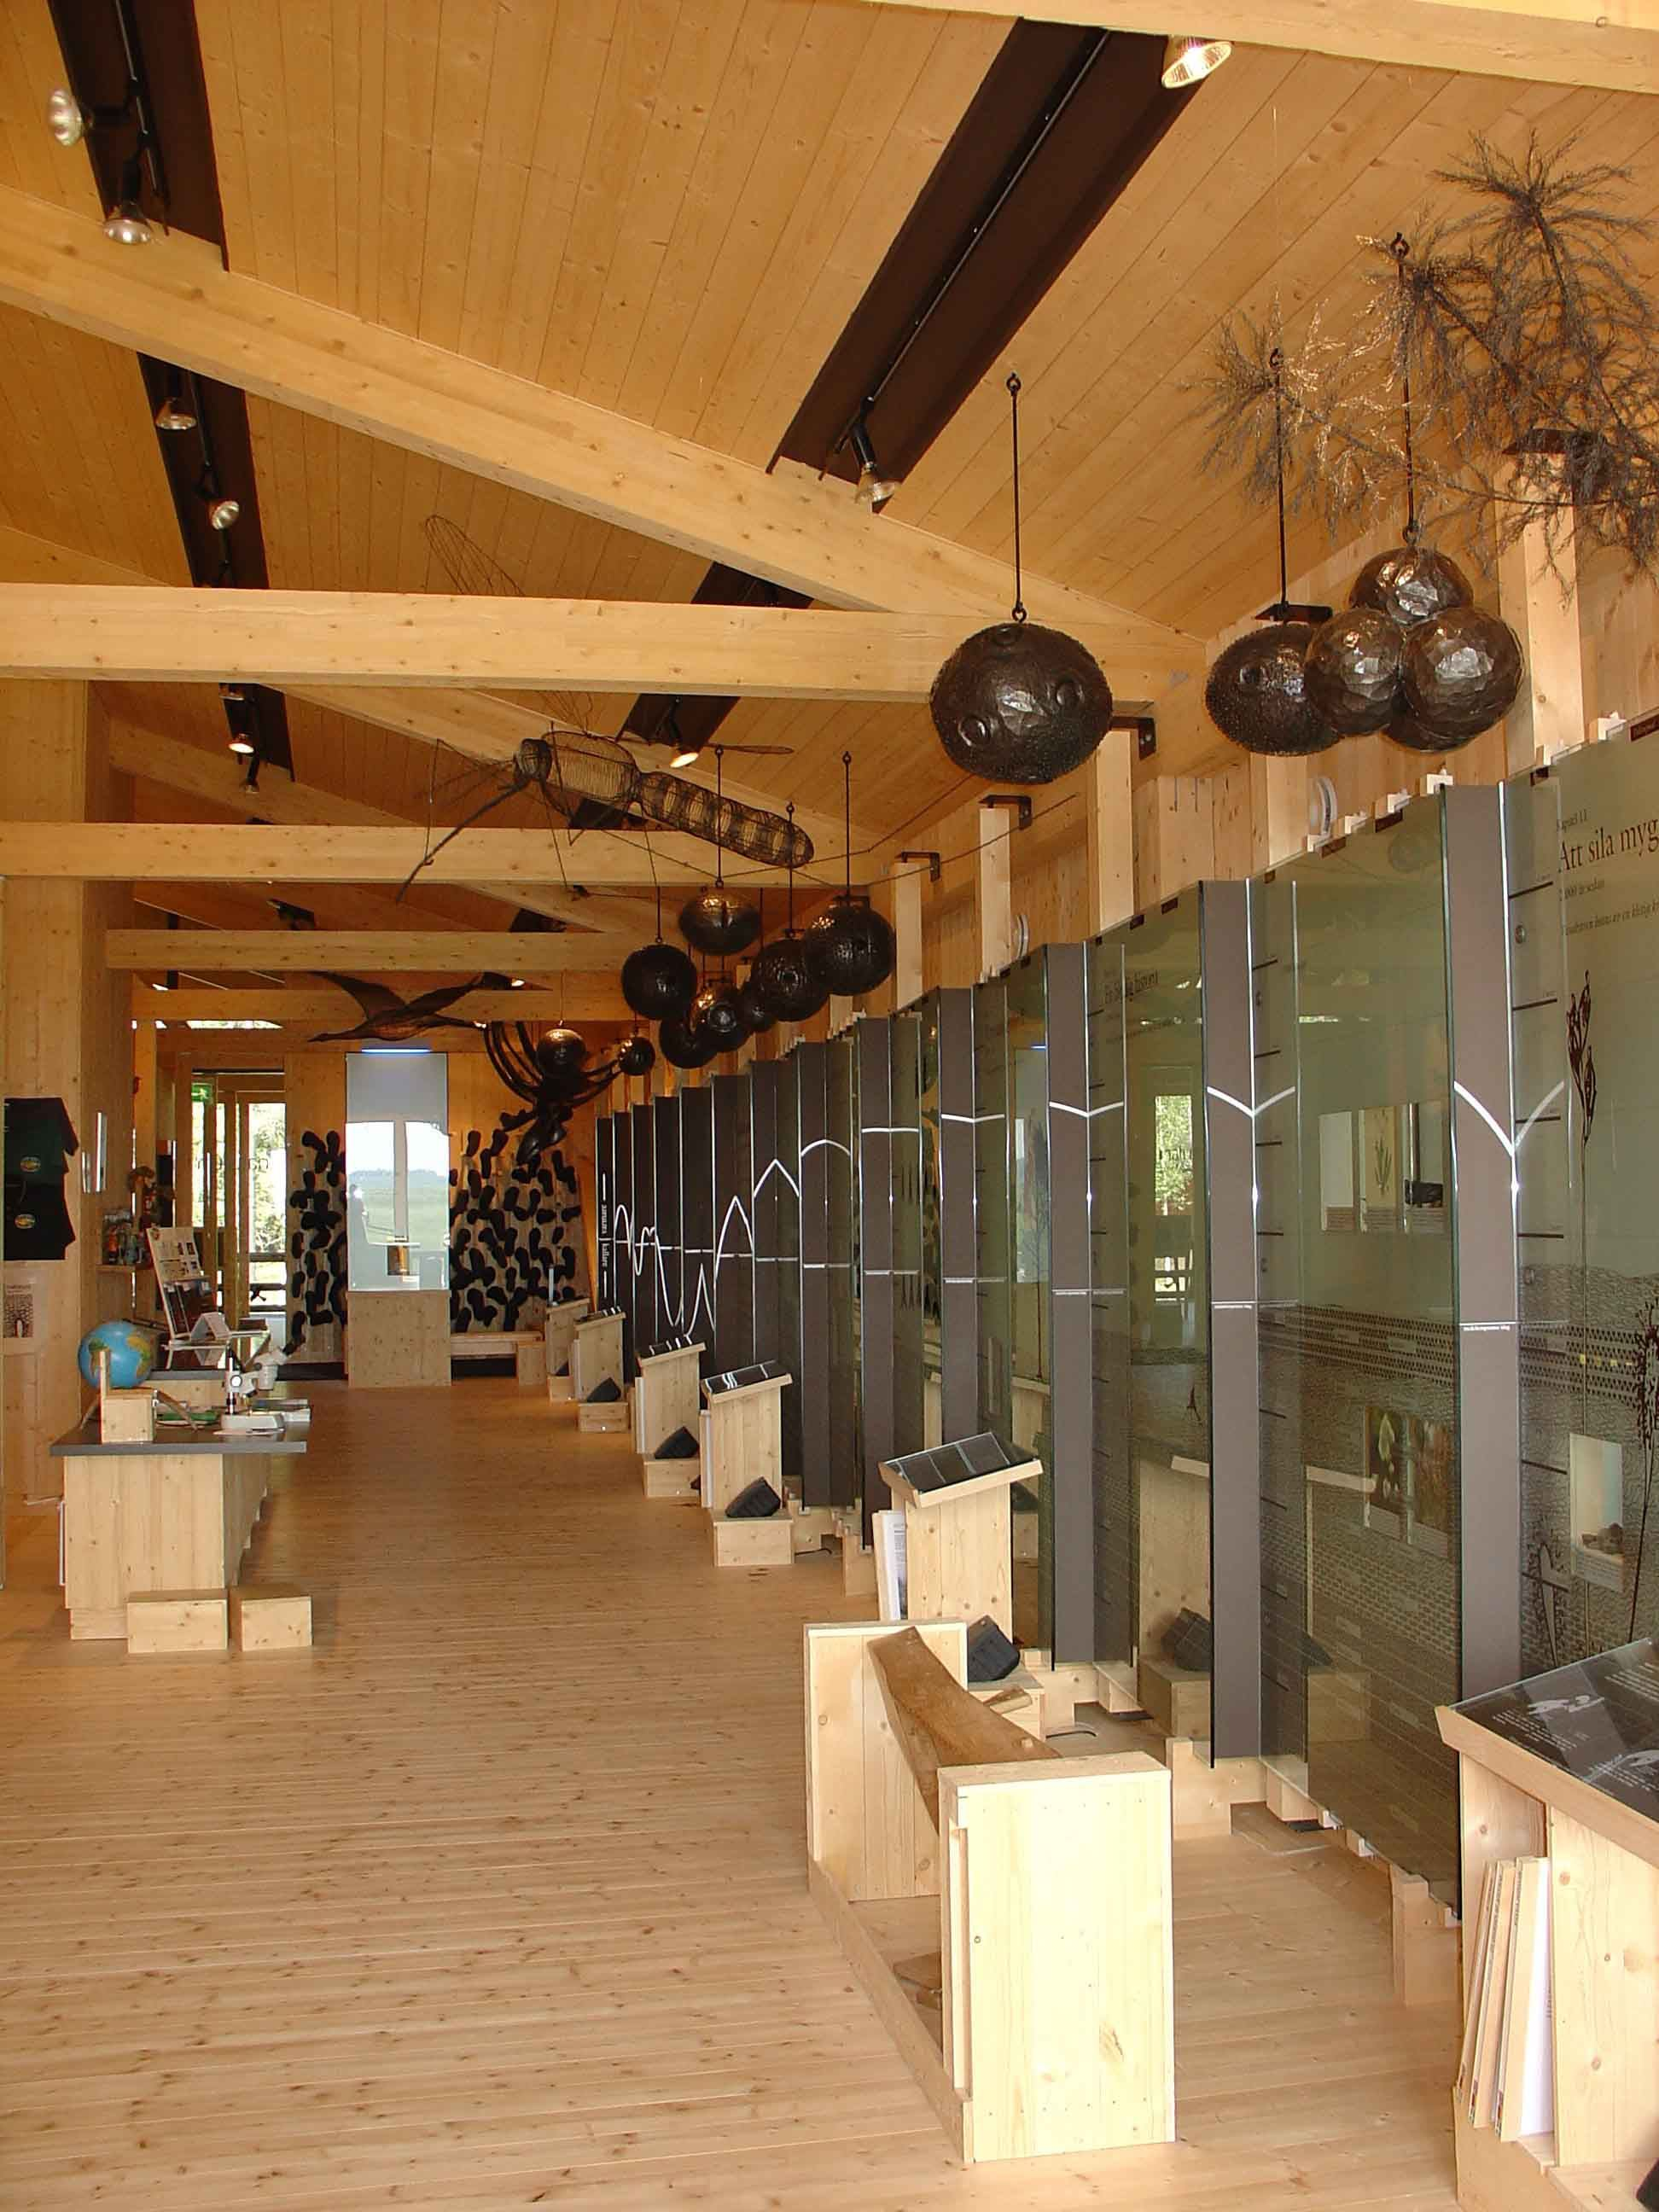 Store Mosse visitor center